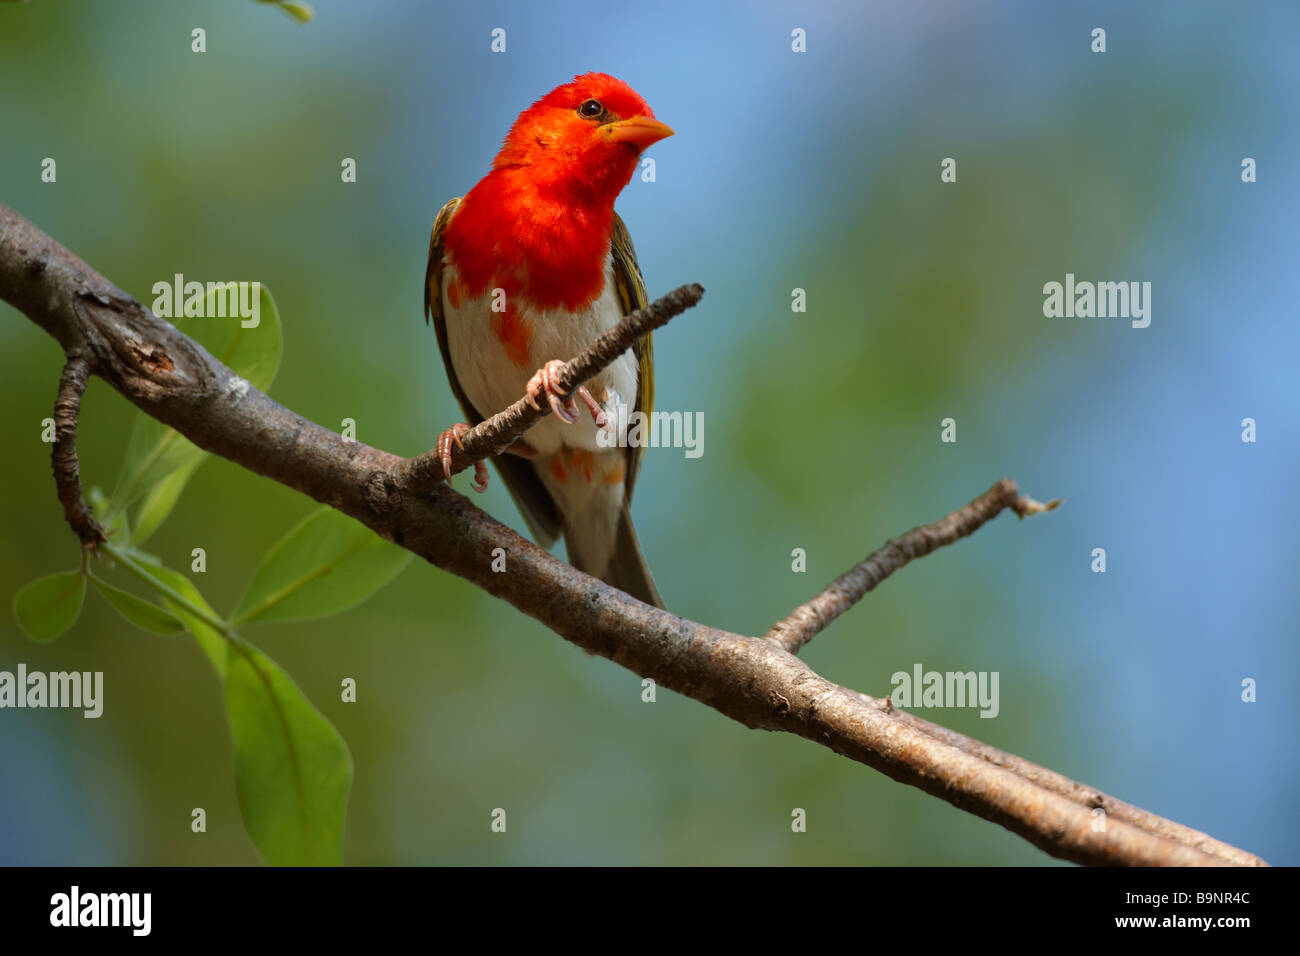 red headed weaver bird on a branch, Kruger National Park, South Africa - Stock Image